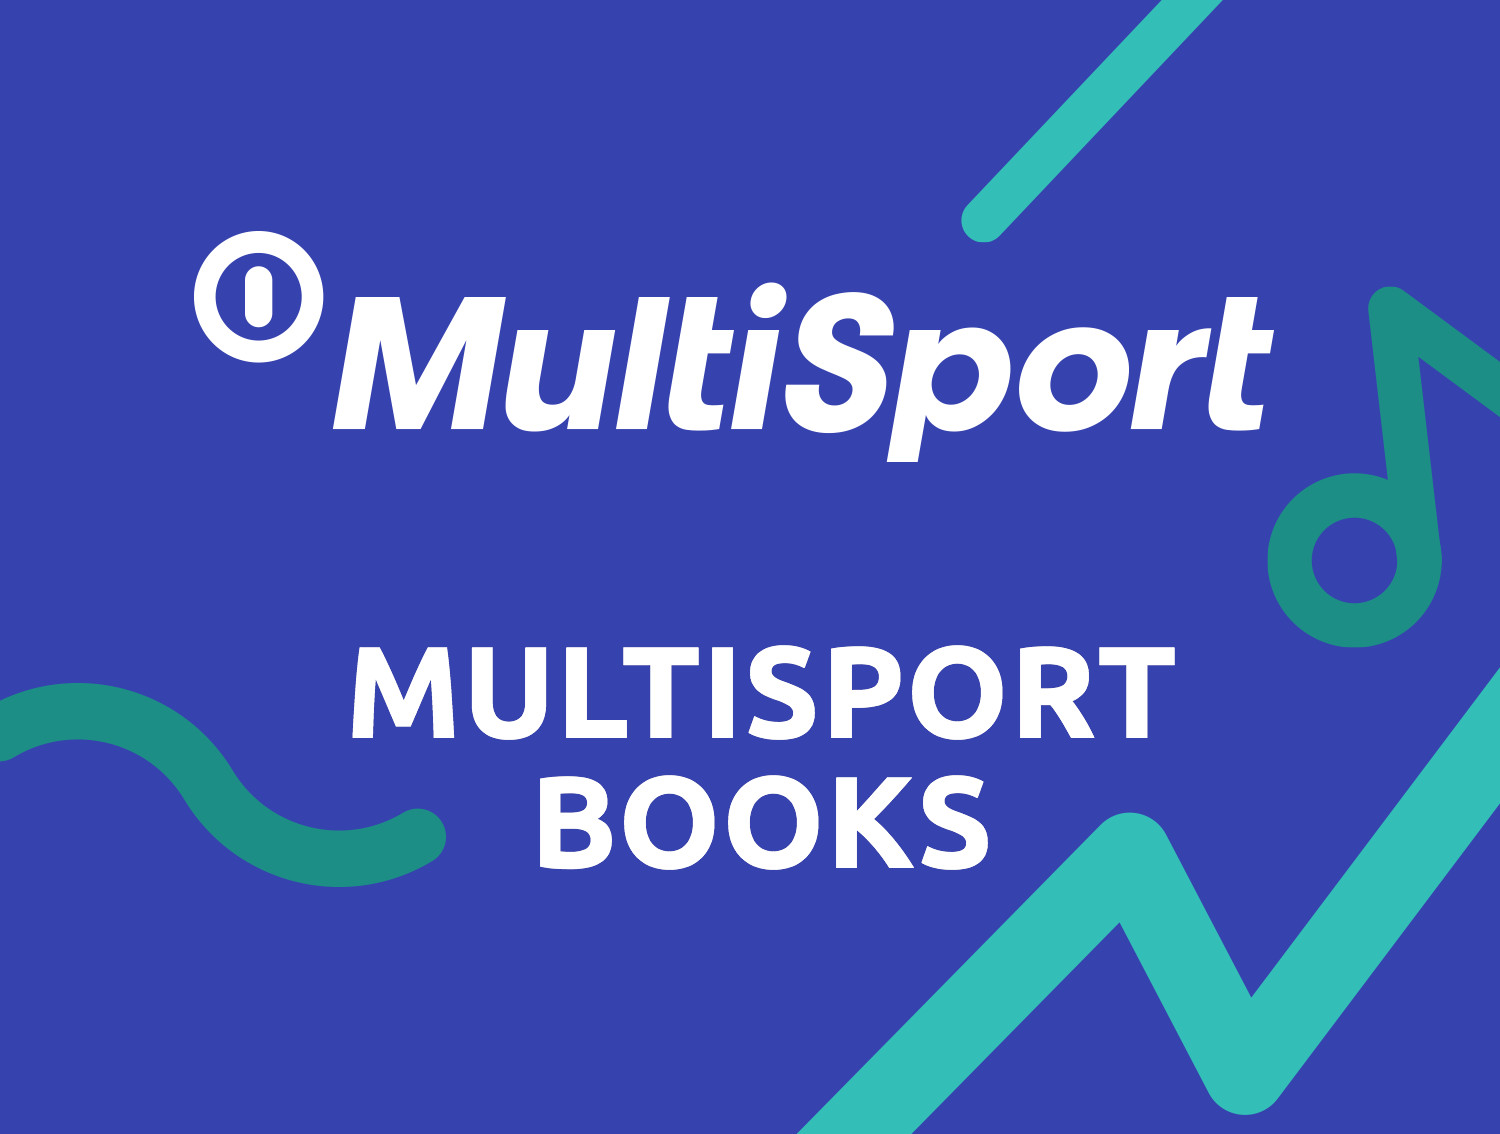 MultiSport Books